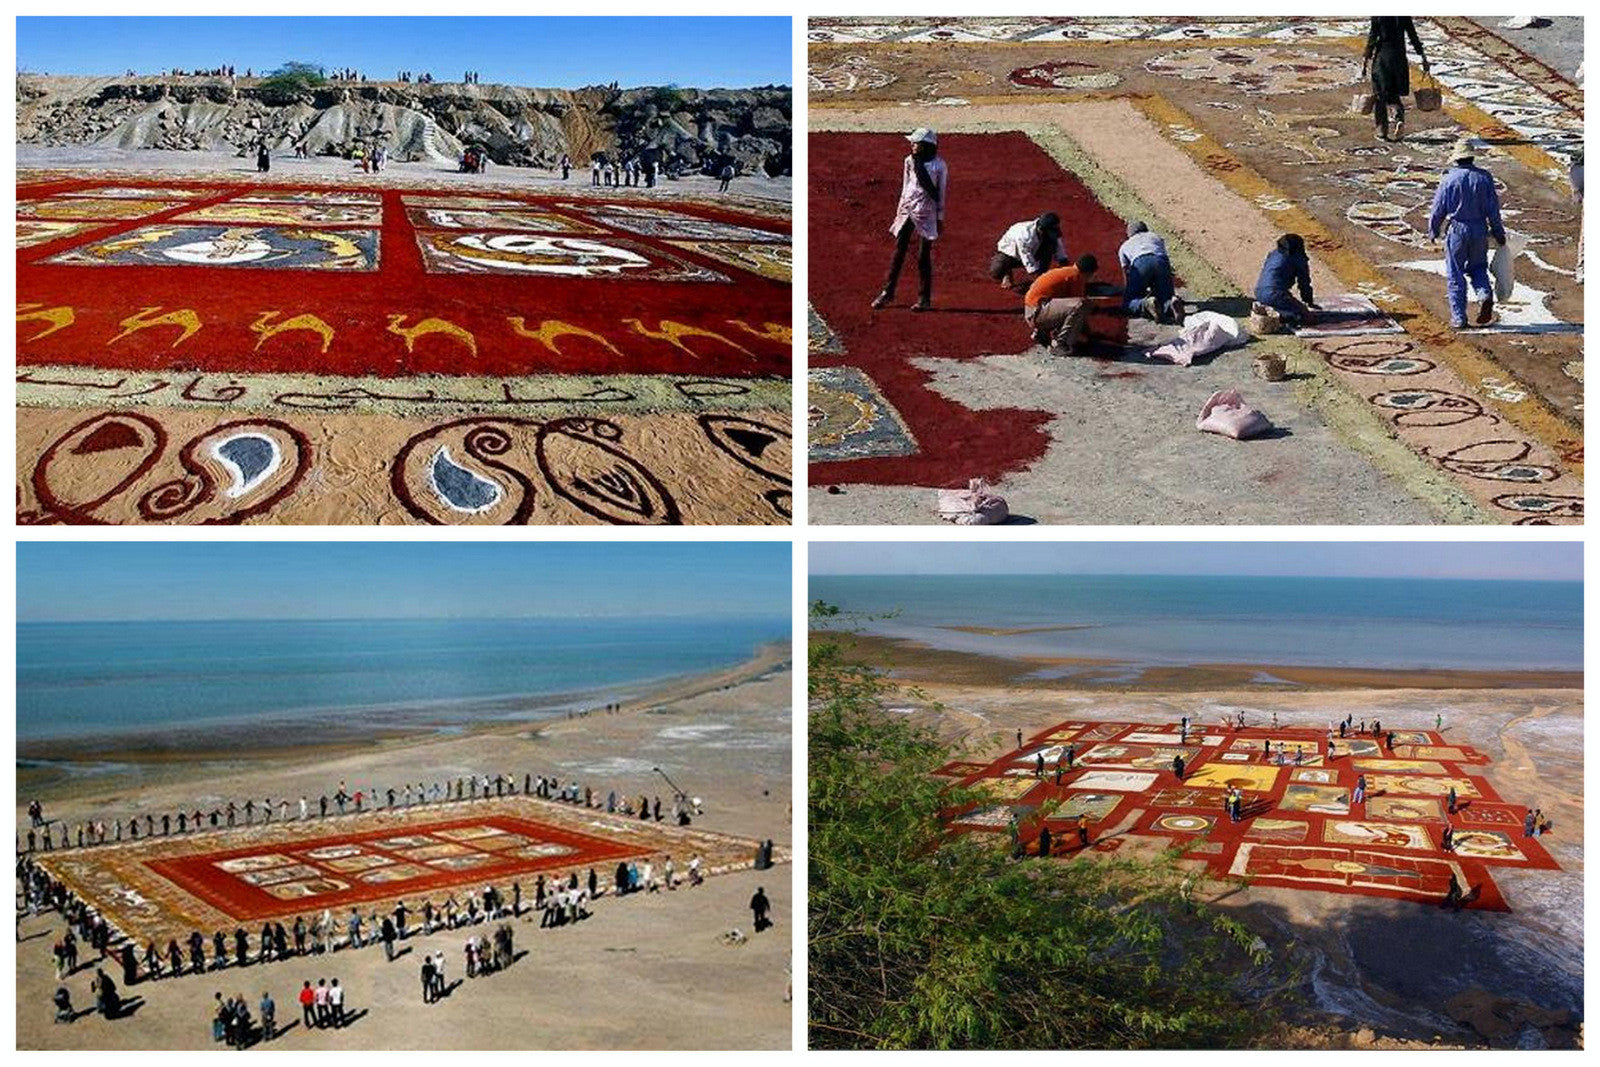 Simply Amazing - A Rug Made of Sand Three Acres Large!